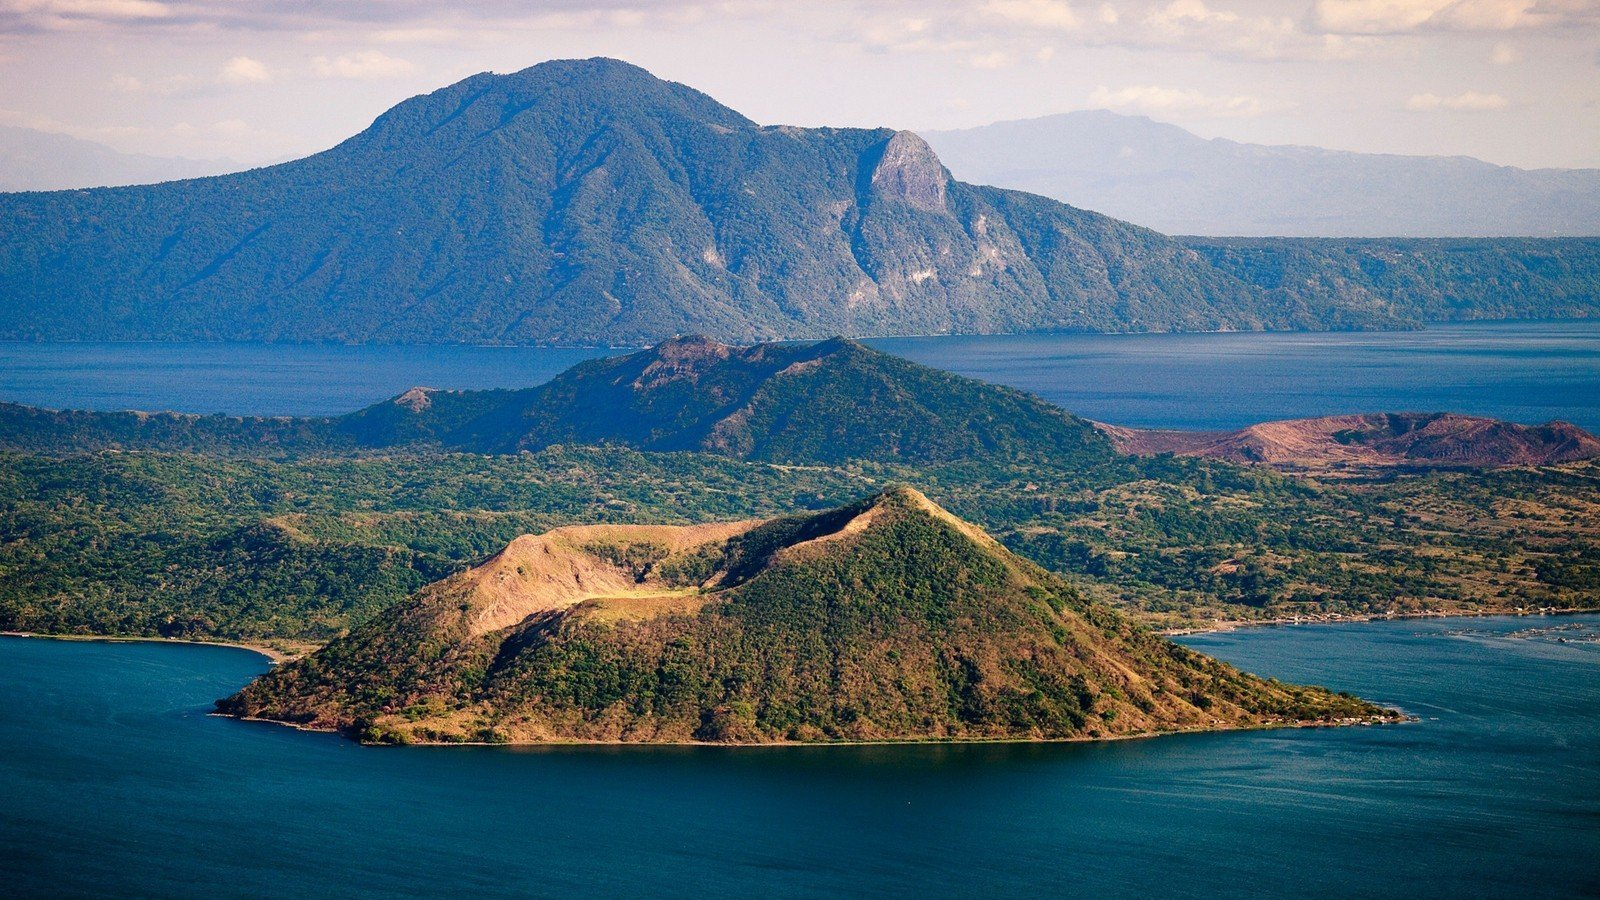 Hiking to Taal Volcano in the Philippines